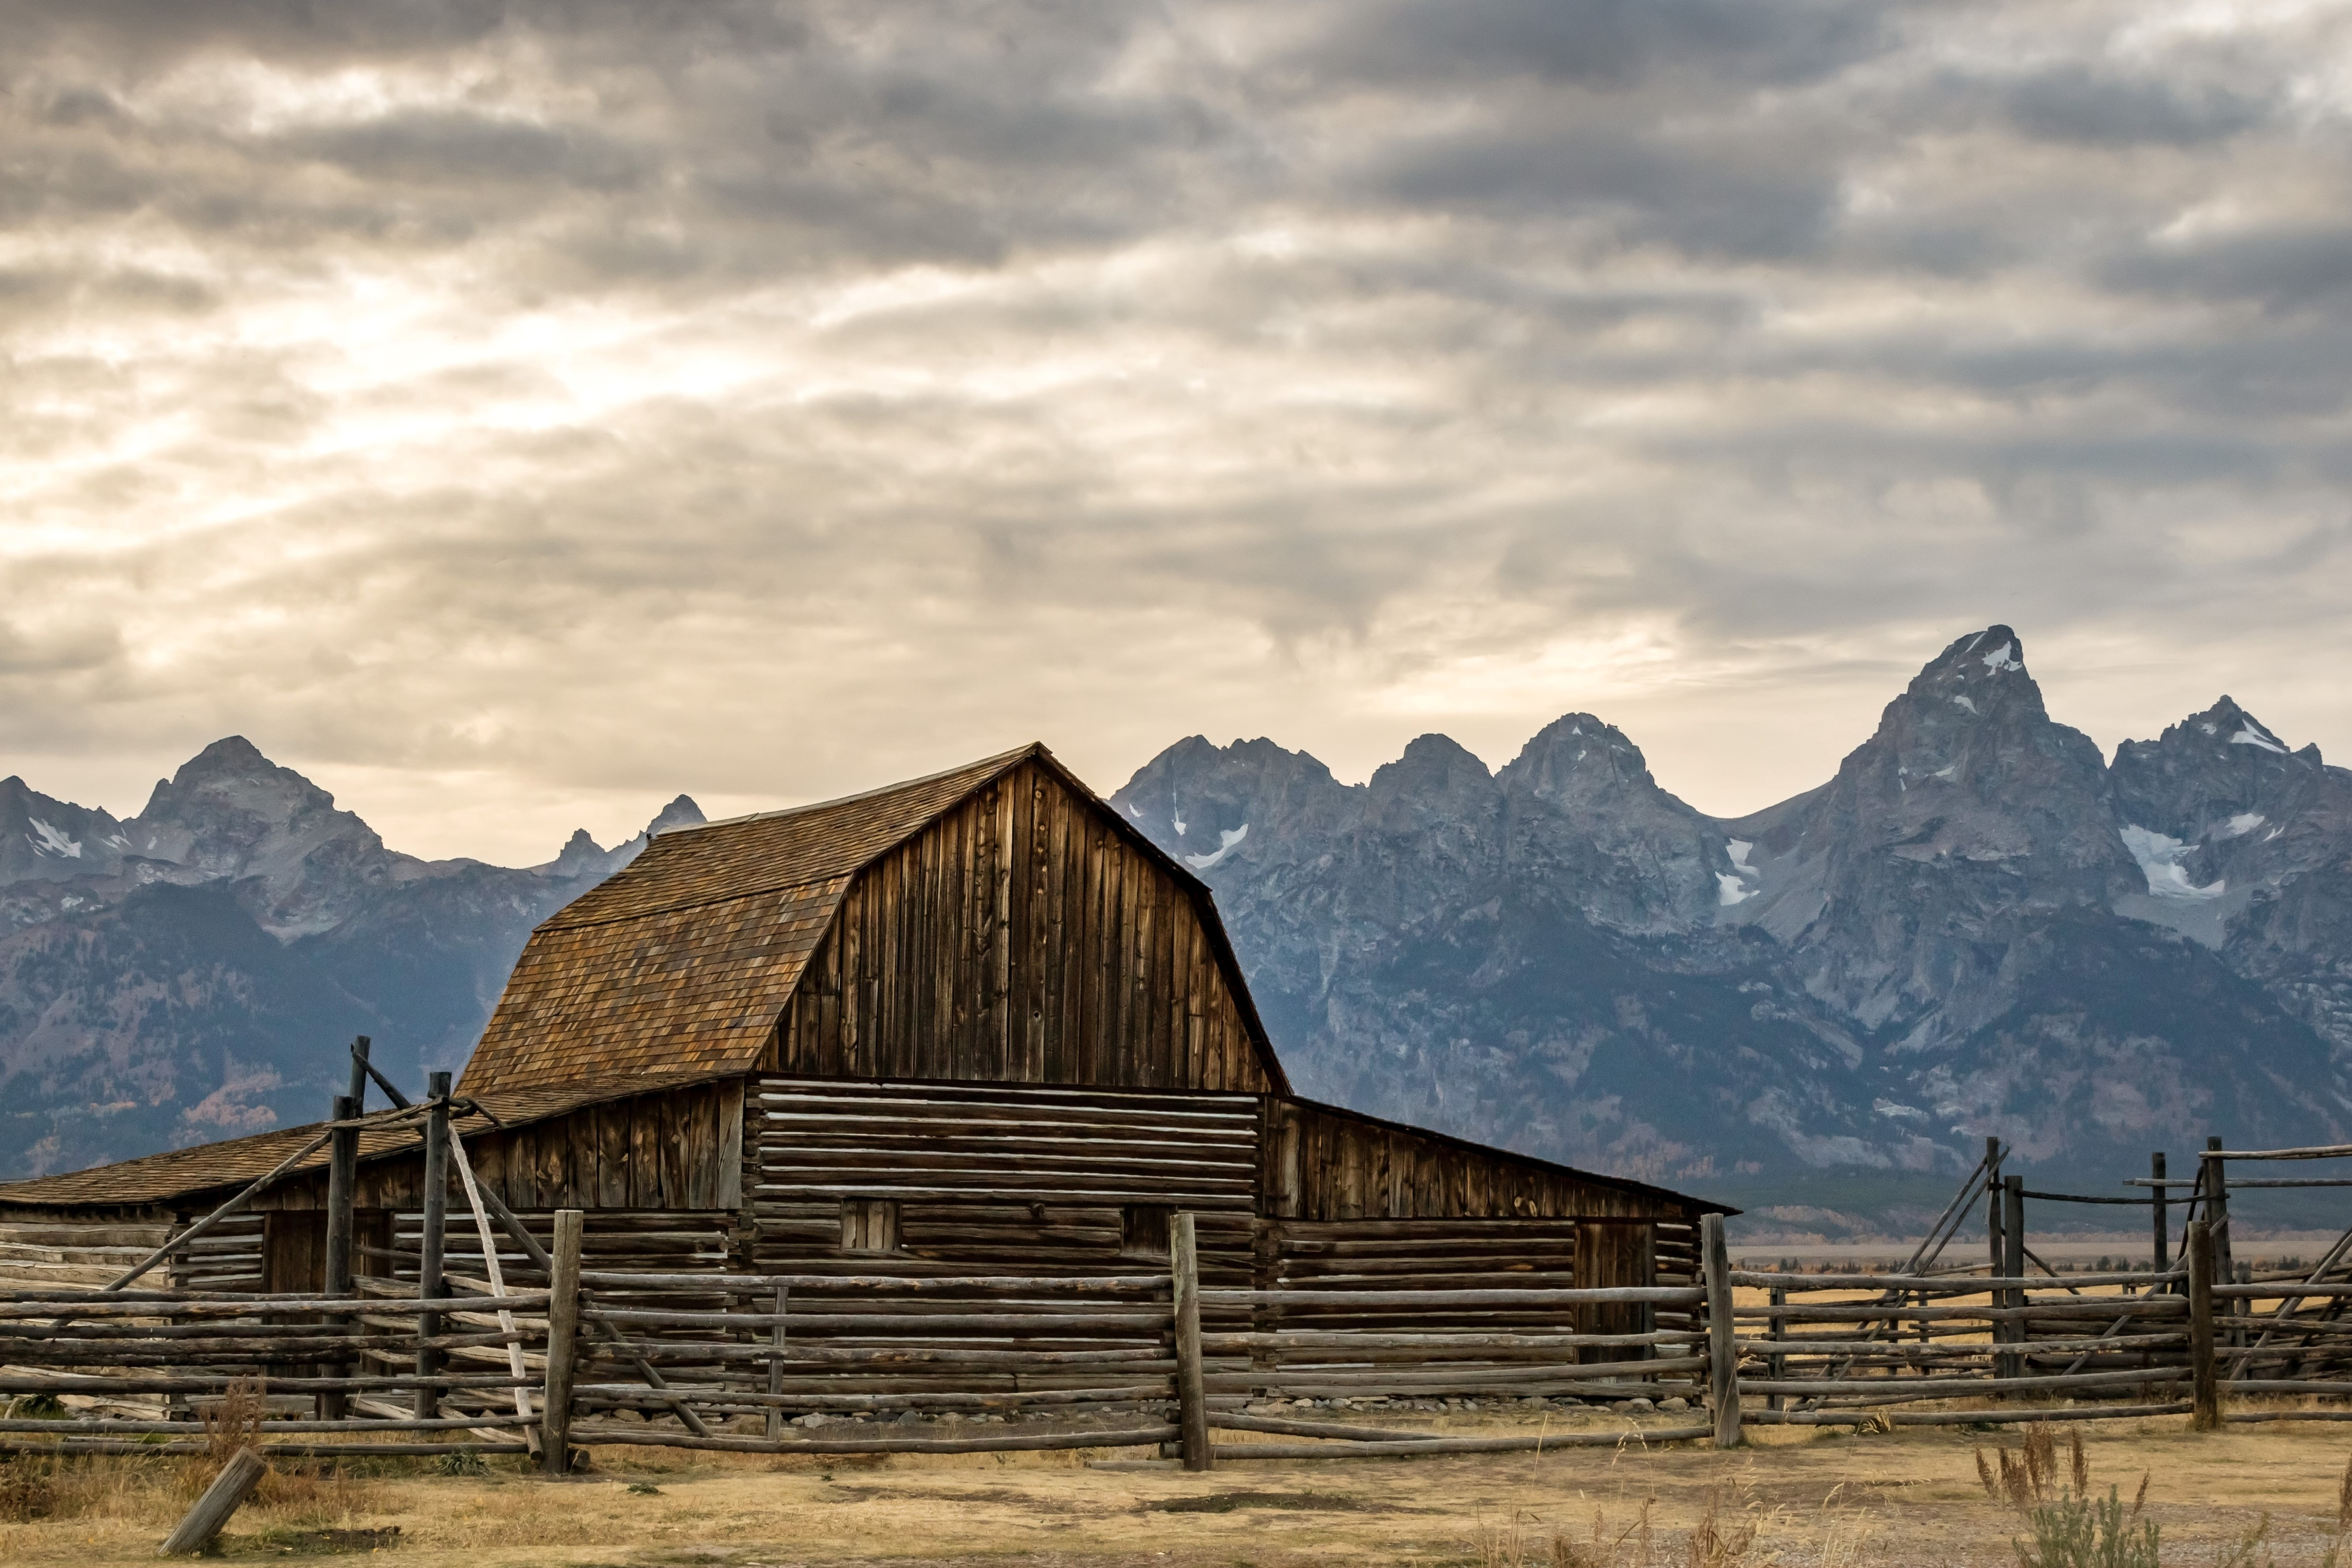 Barn in front of the Tetons on an overcast day.